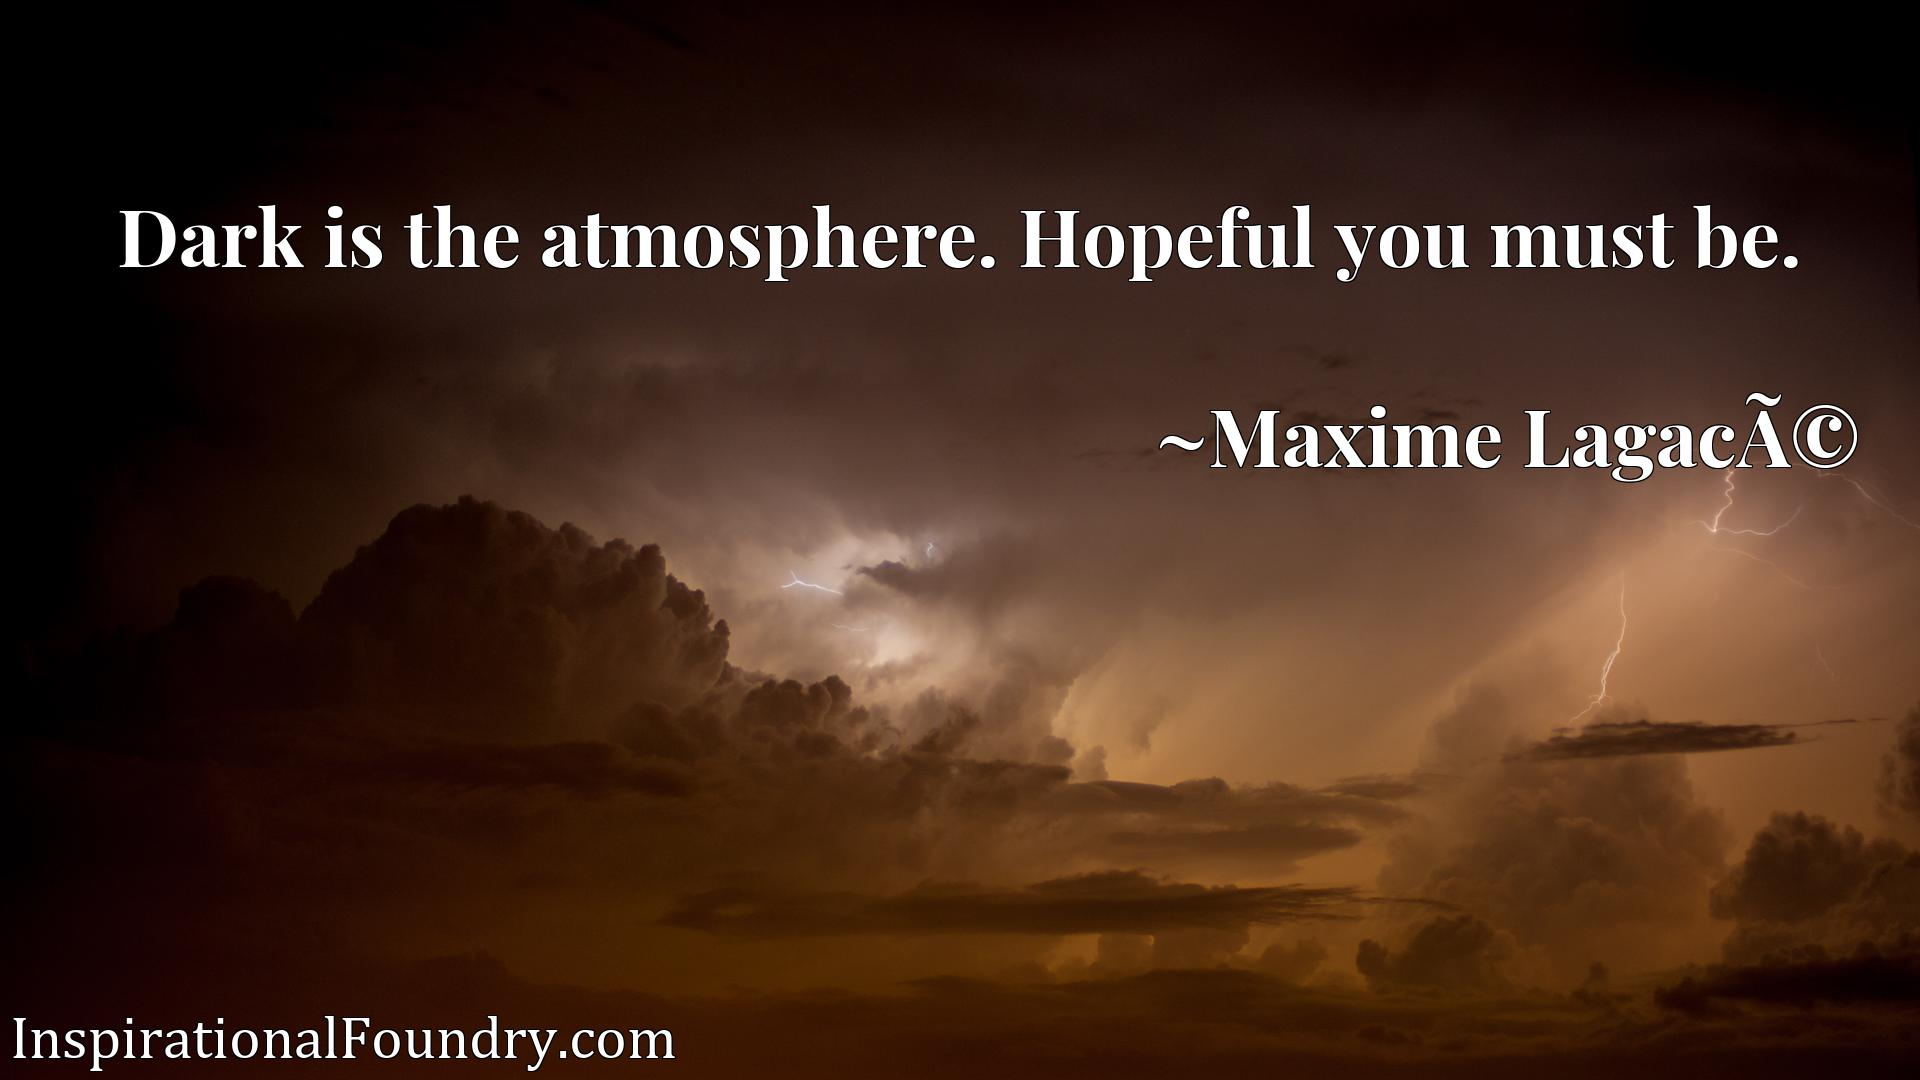 Dark is the atmosphere. Hopeful you must be.